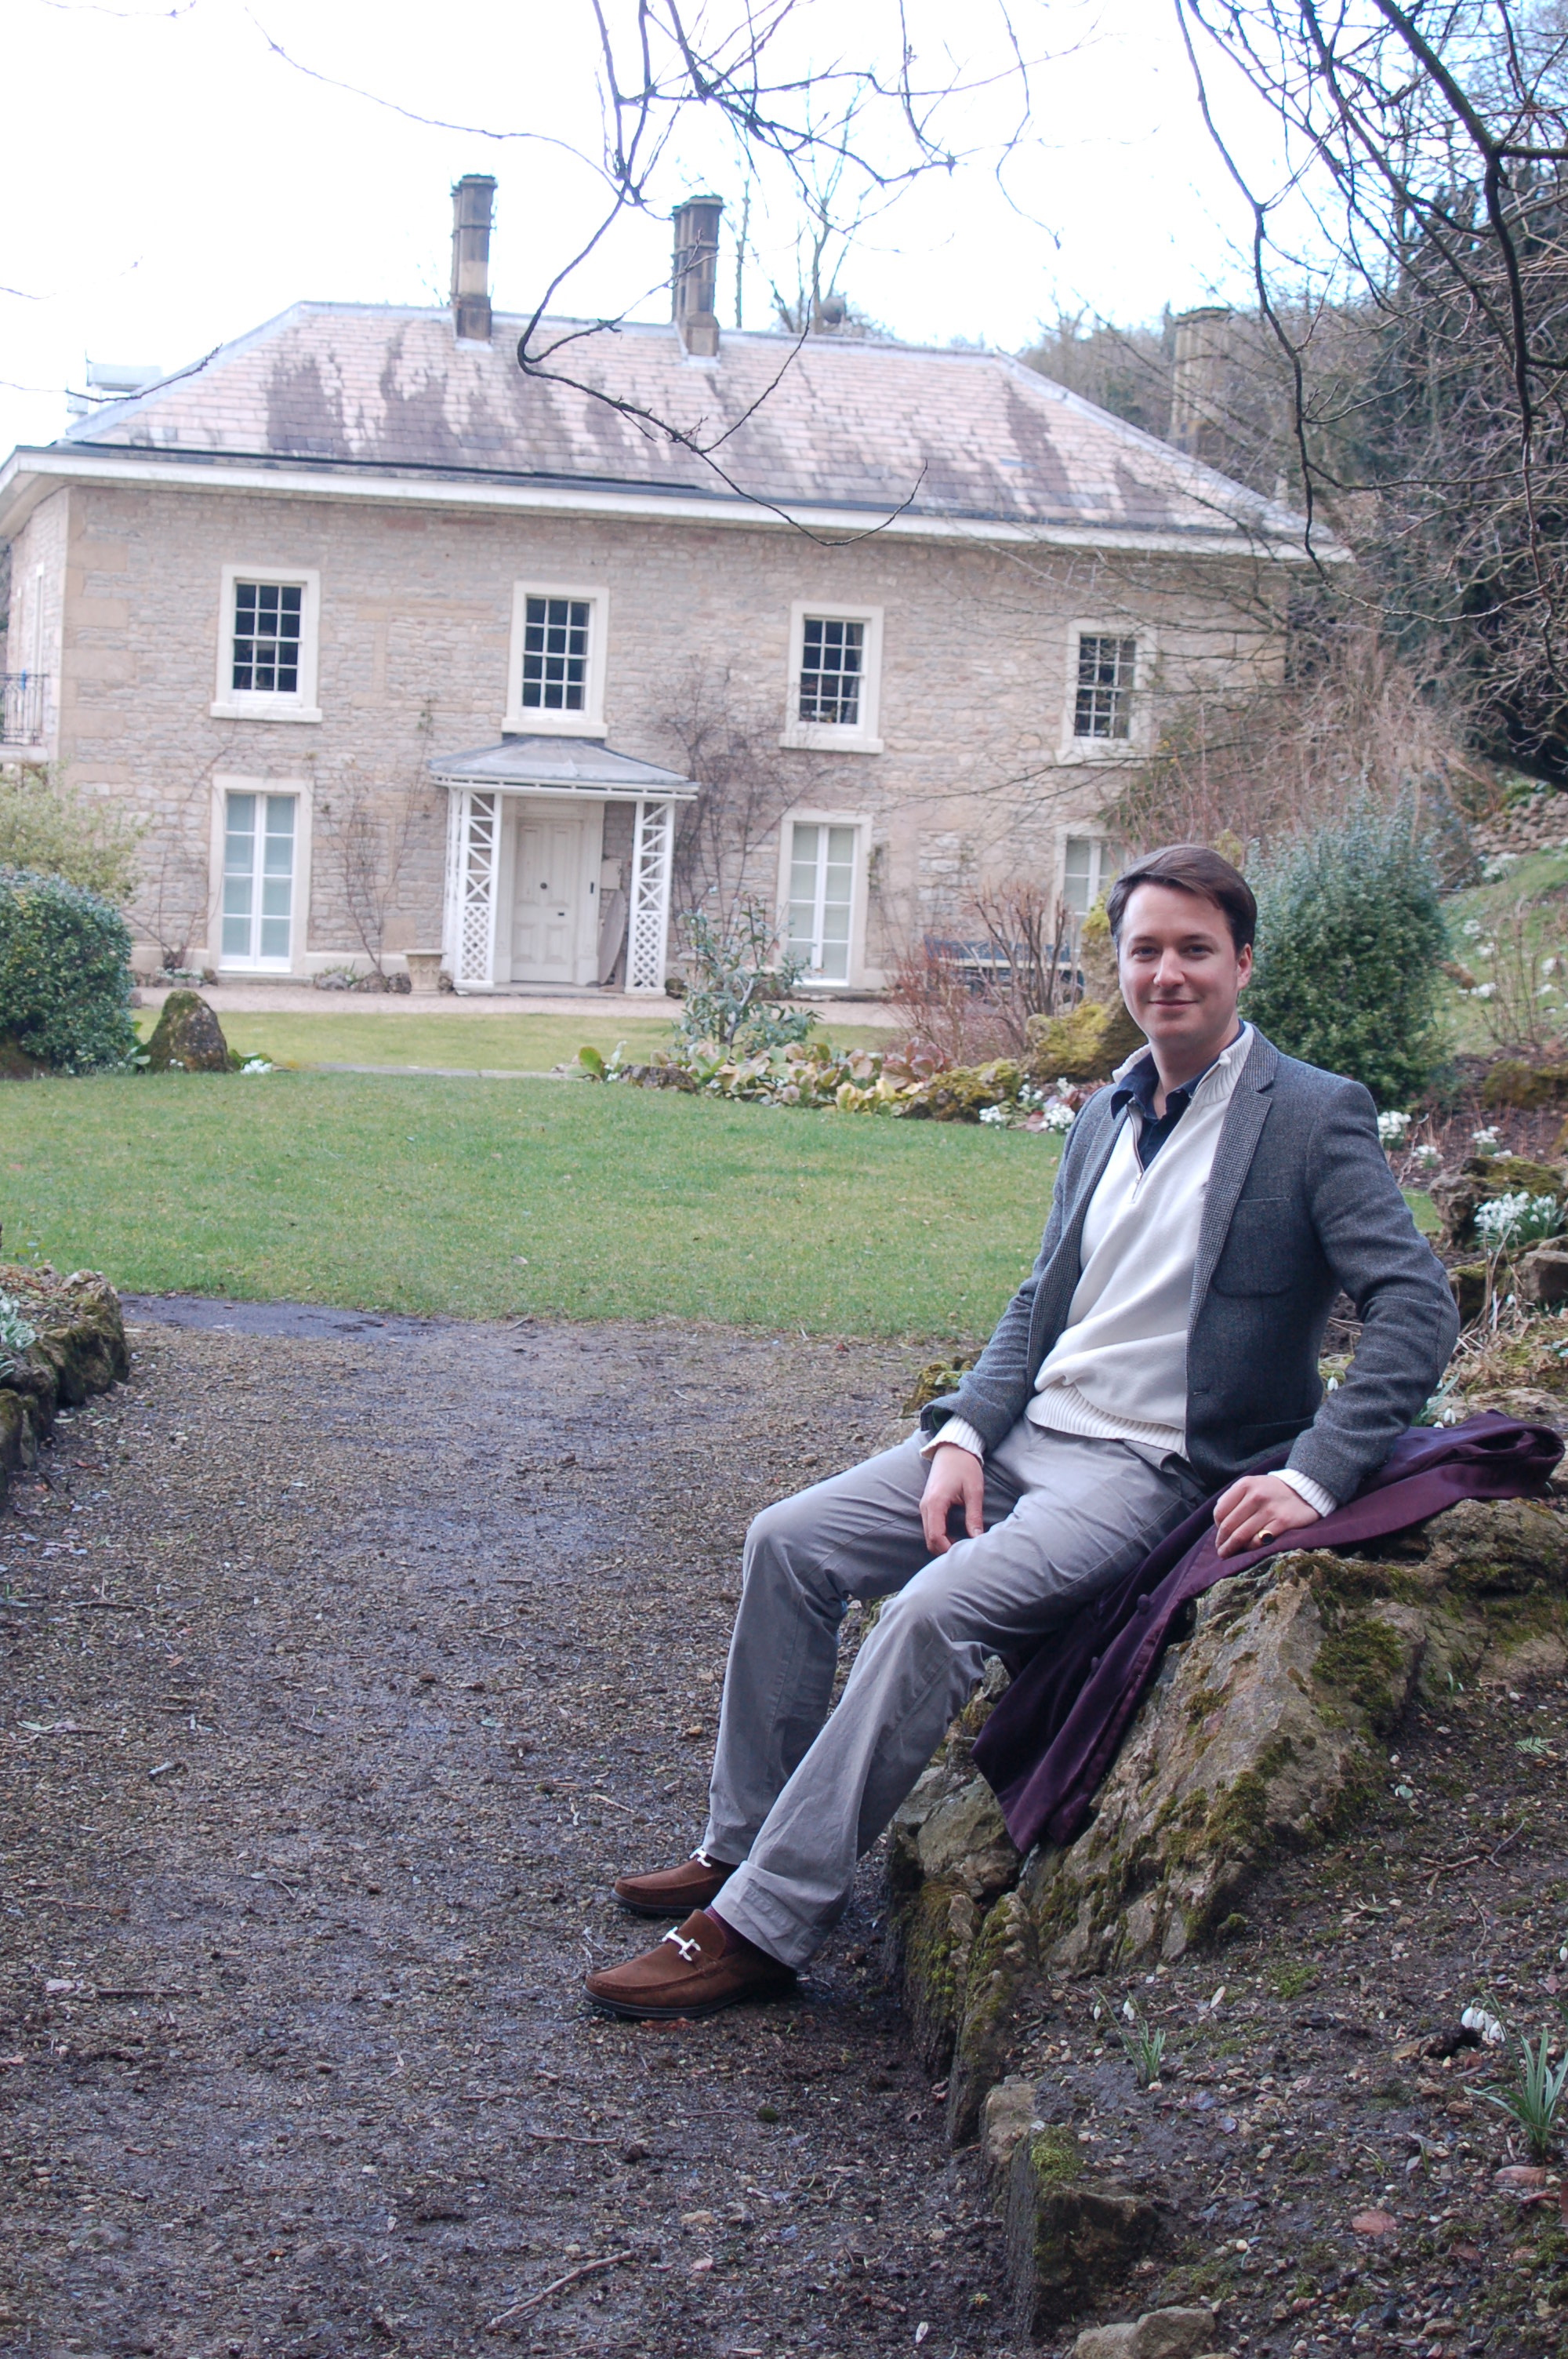 Oliver at home in Derbyshire. Photograph by Elisabeth Stoppard